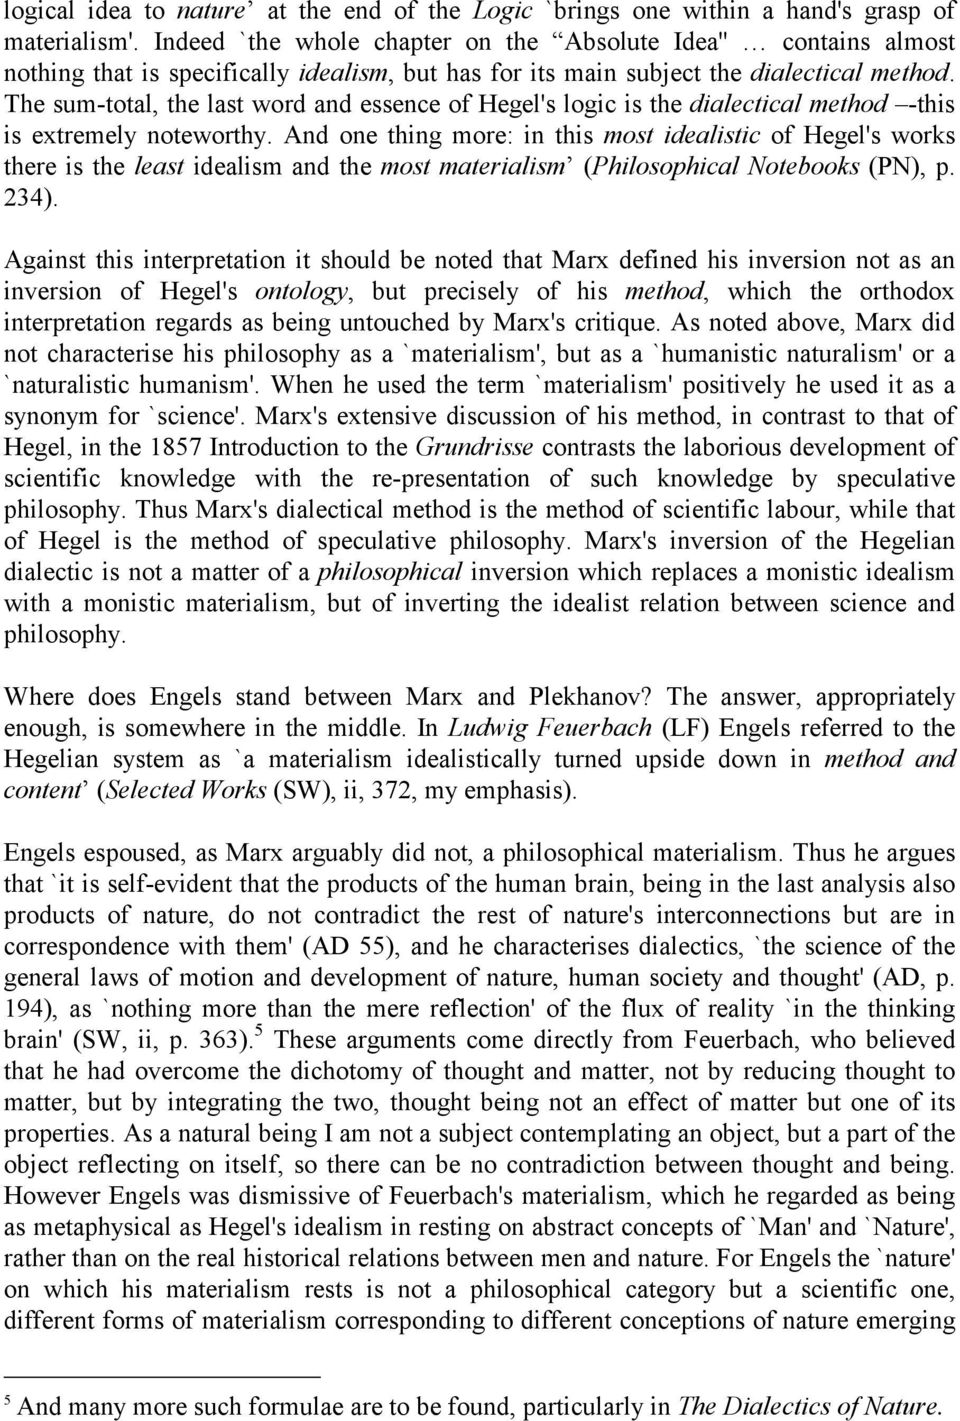 The sum-total, the last word and essence of Hegel's logic is the dialectical method -this is extremely noteworthy.